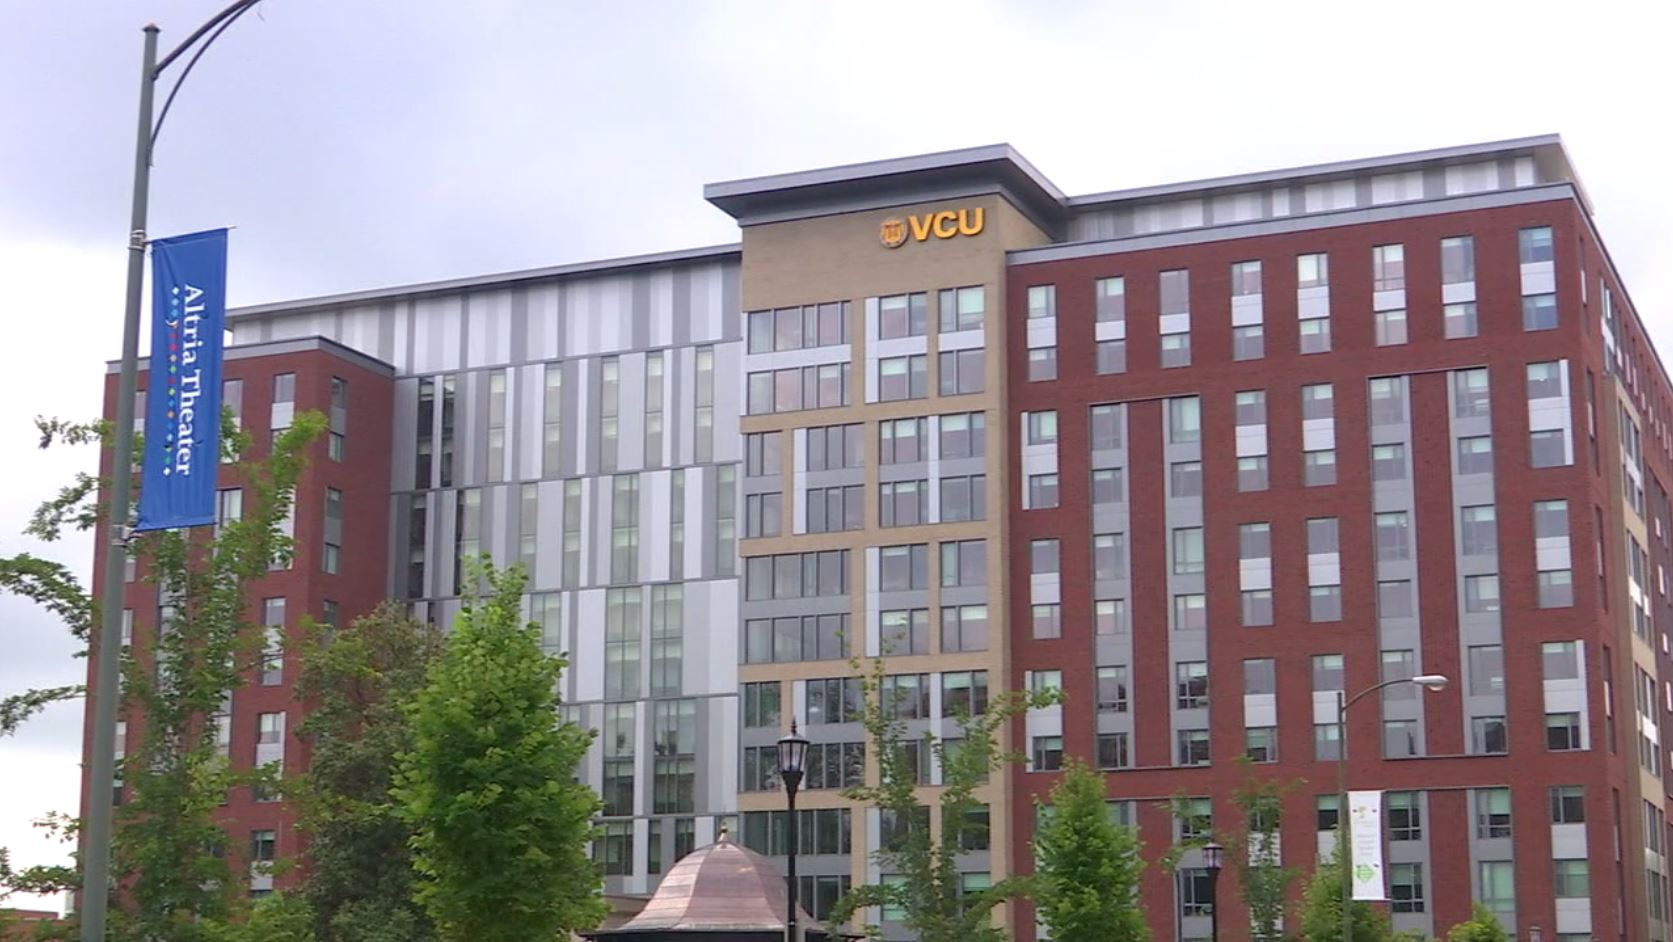 Vcu Off Campus Housing >> Overcrowding Could Put Some Vcu Students In Temporary